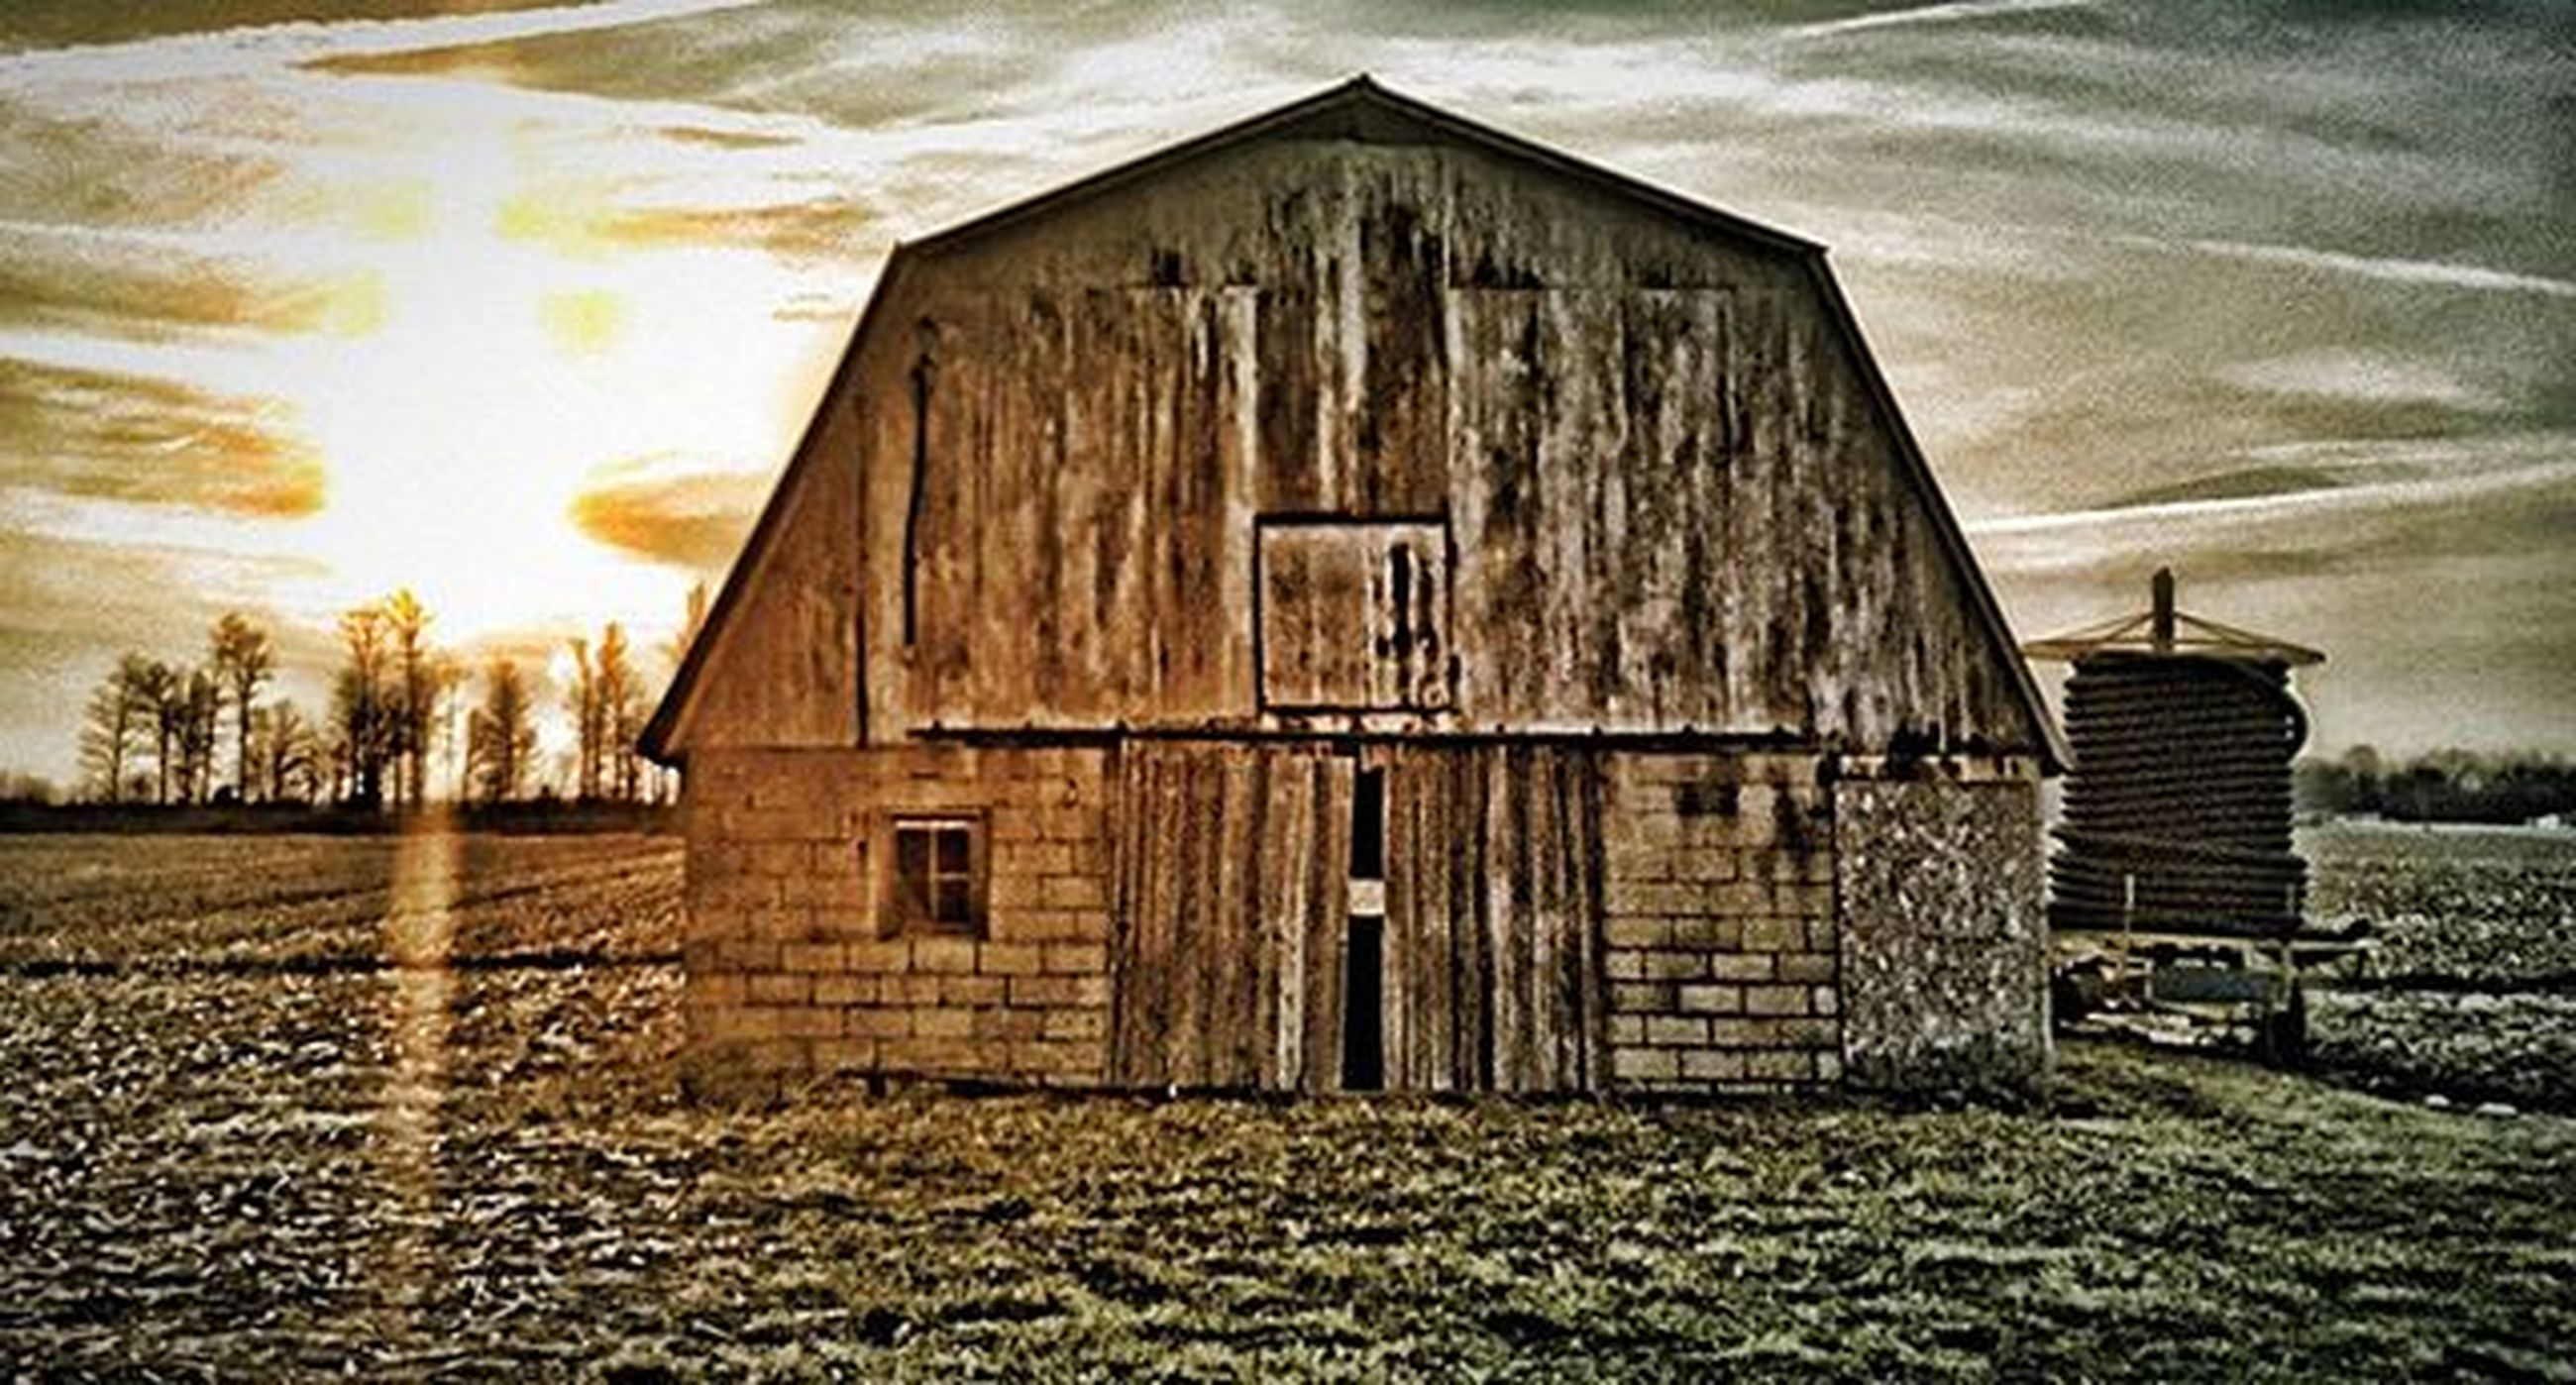 architecture, built structure, building exterior, sky, field, house, cloud - sky, abandoned, barn, rural scene, grass, landscape, cloud, obsolete, old, damaged, wood - material, no people, sunlight, outdoors